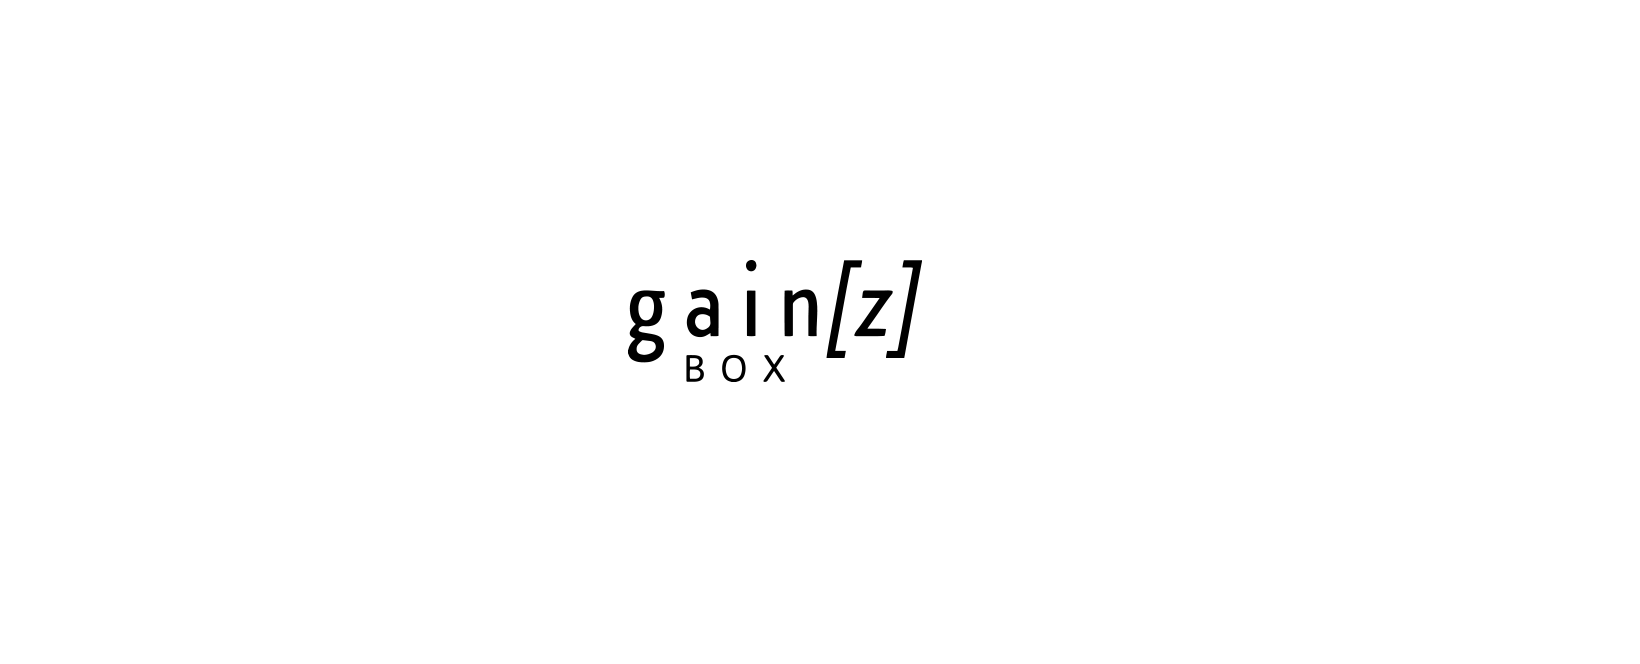 The Gainz Box Coupon Code 2021